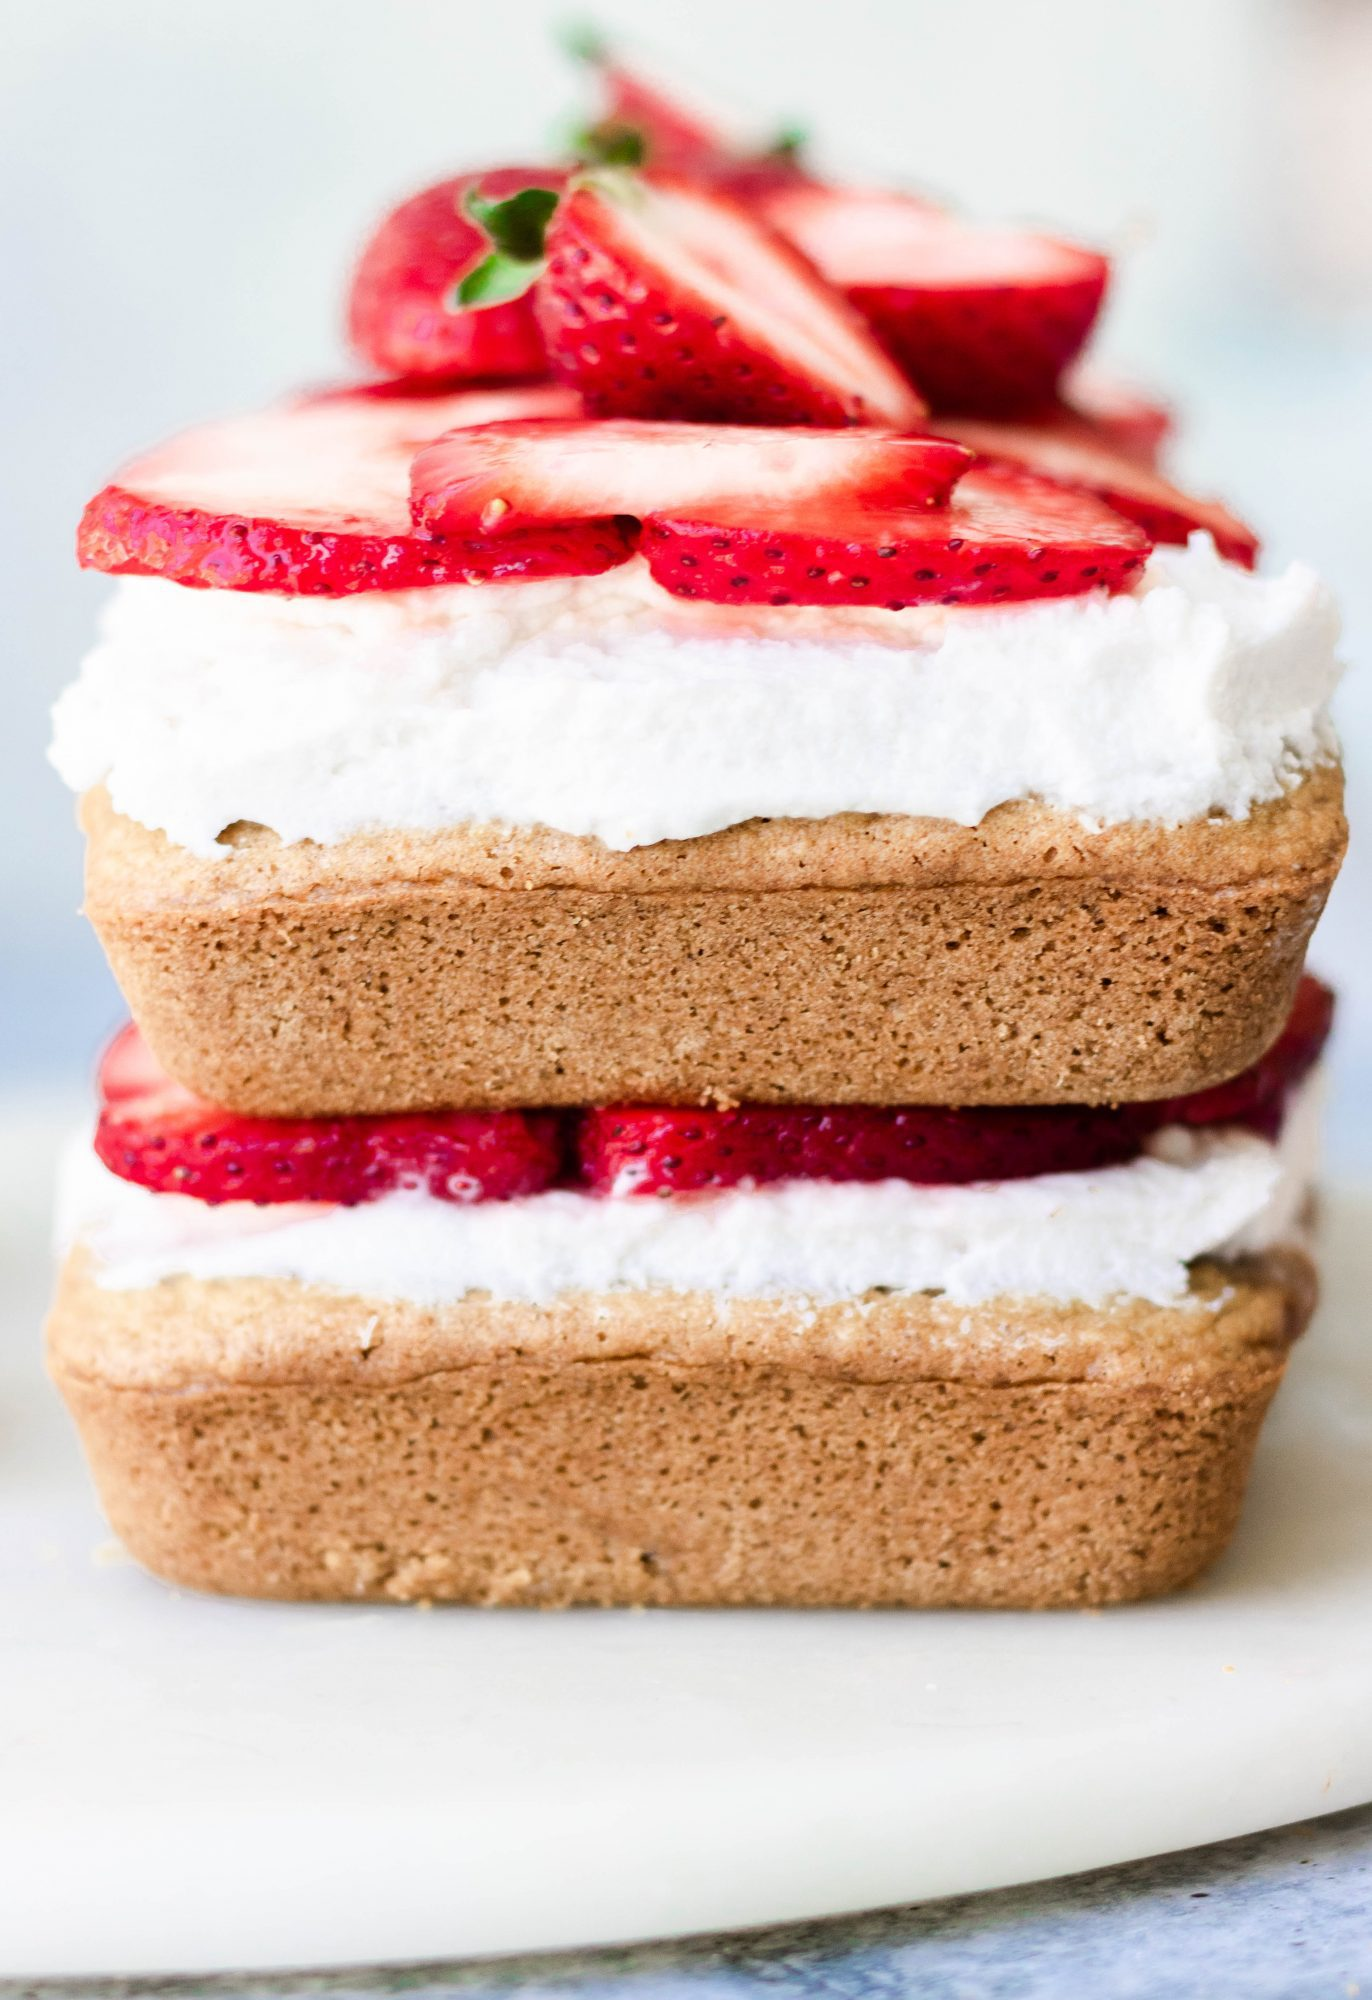 Vegan Gluten-Free Strawberry Shortcake